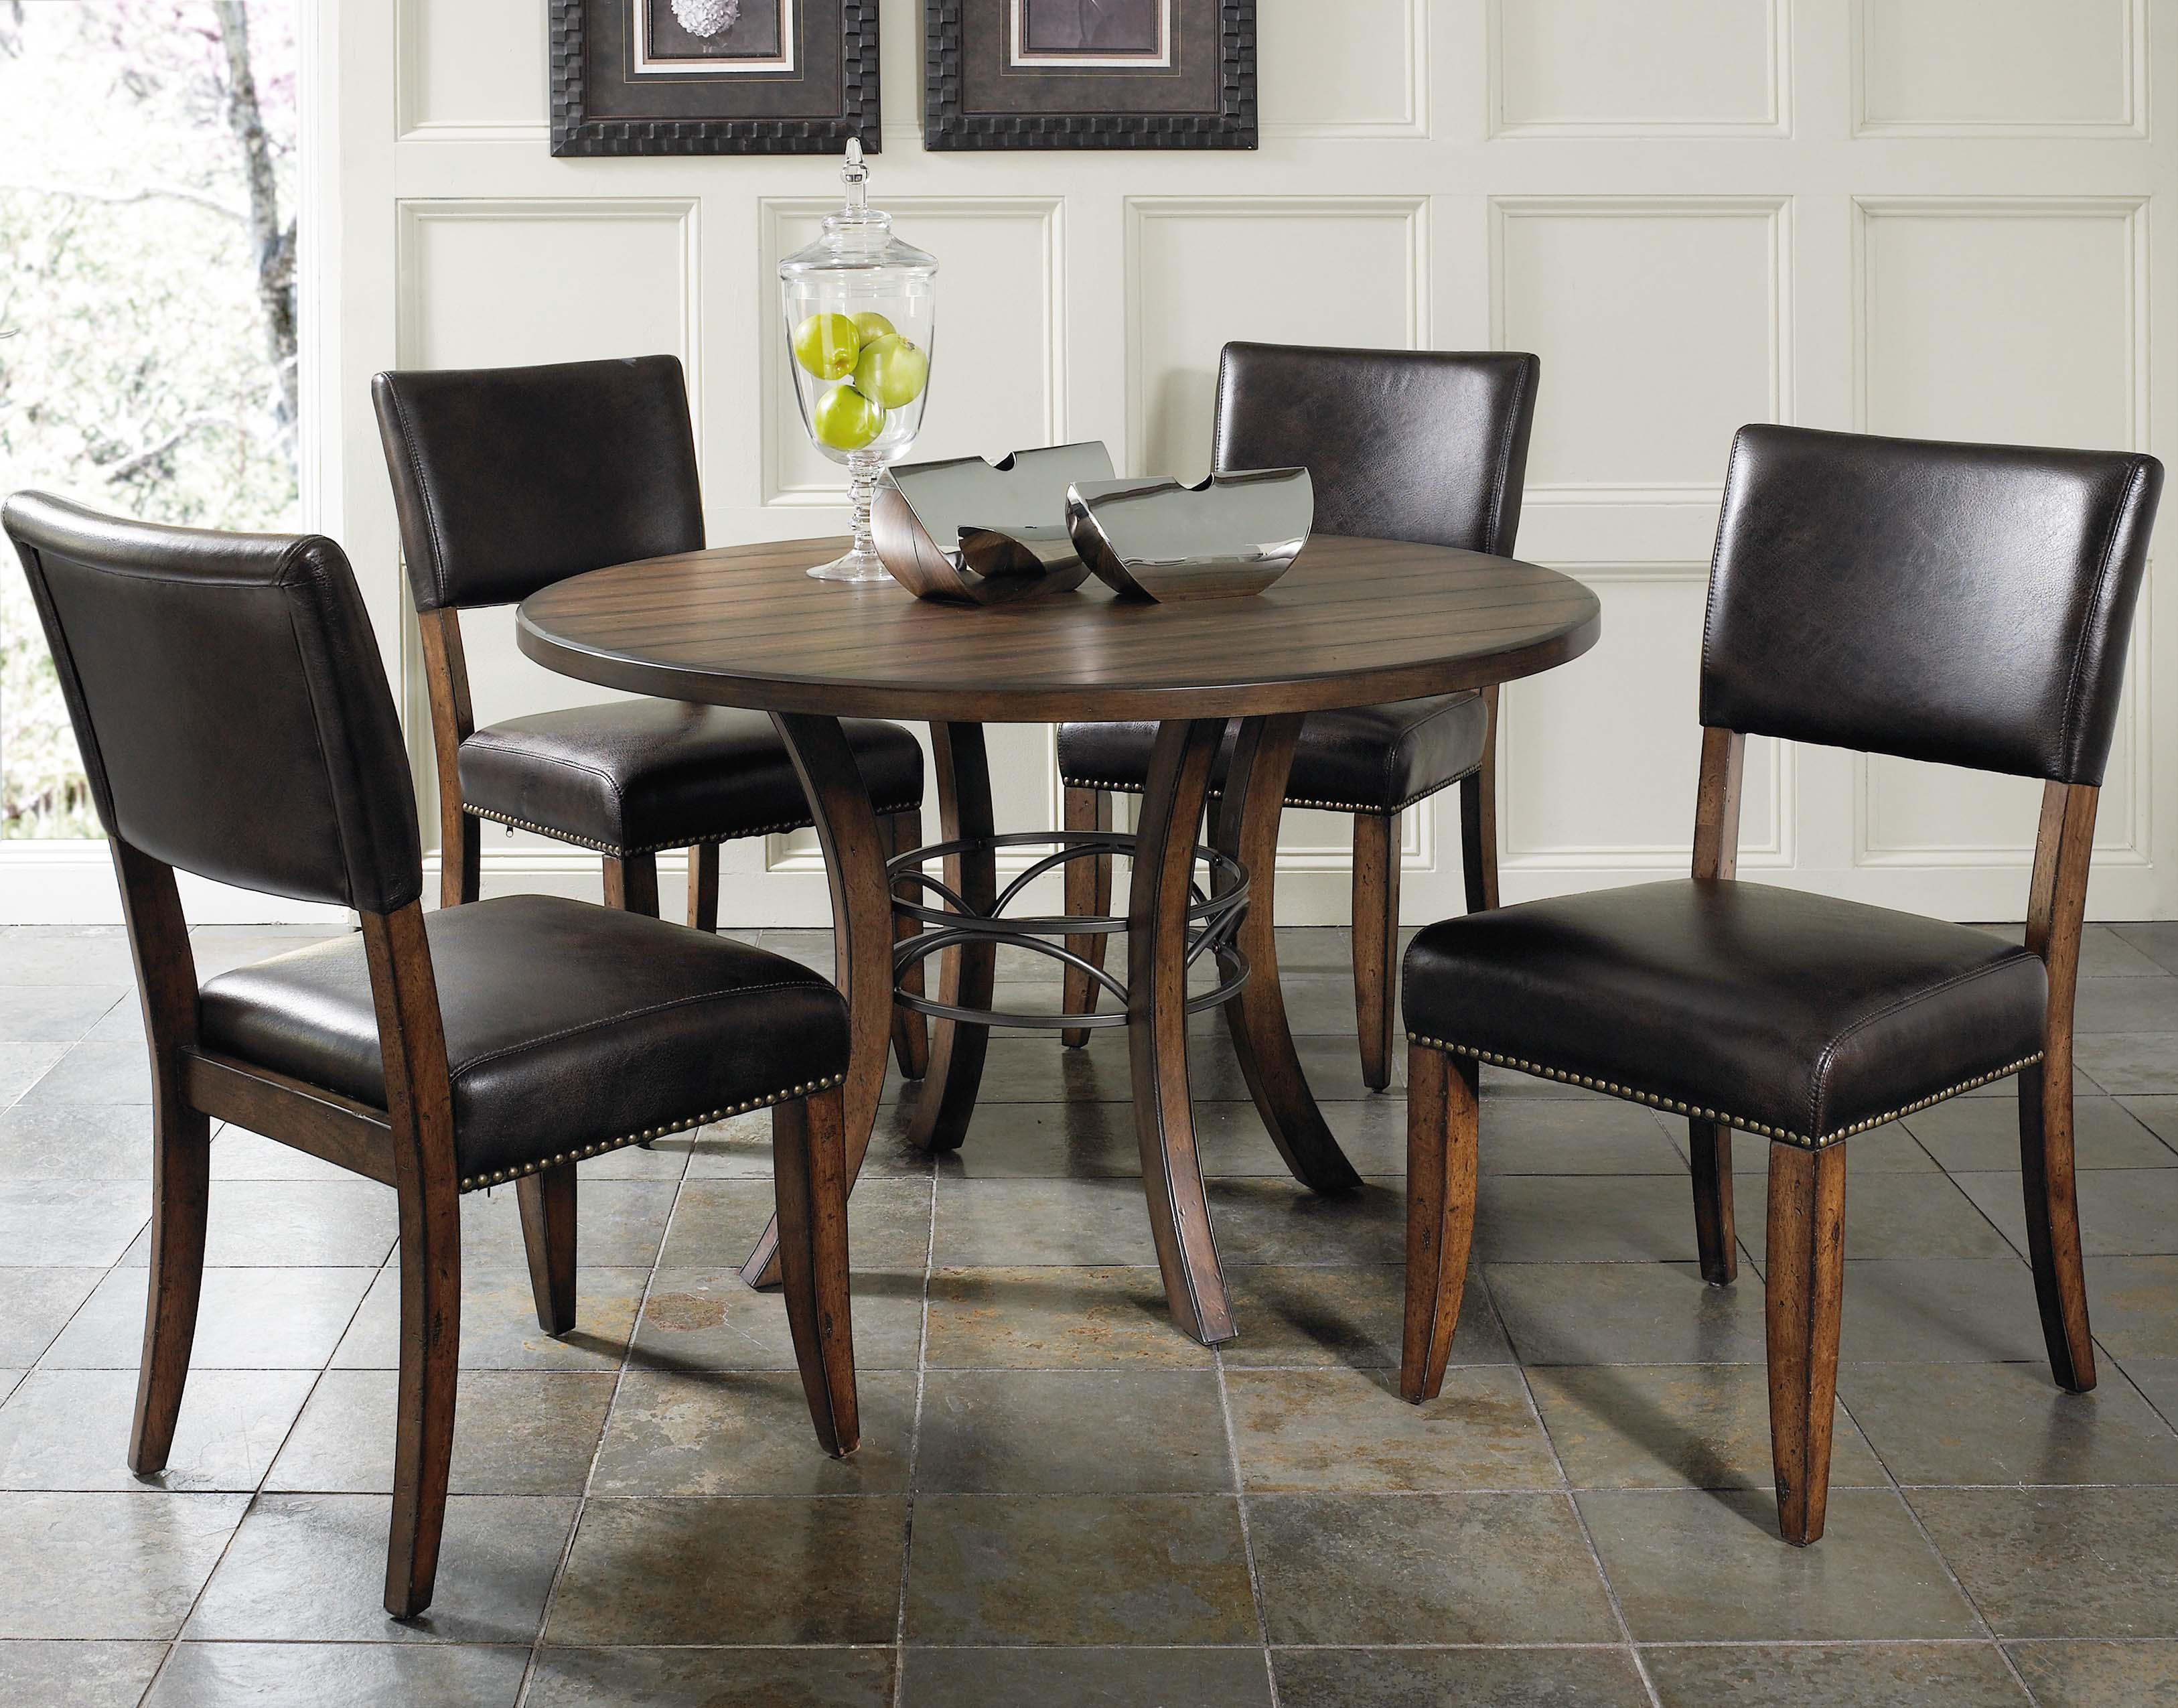 Wood Round Dining Table: Round Wood Dining Table With Metal Acent Base By Hillsdale